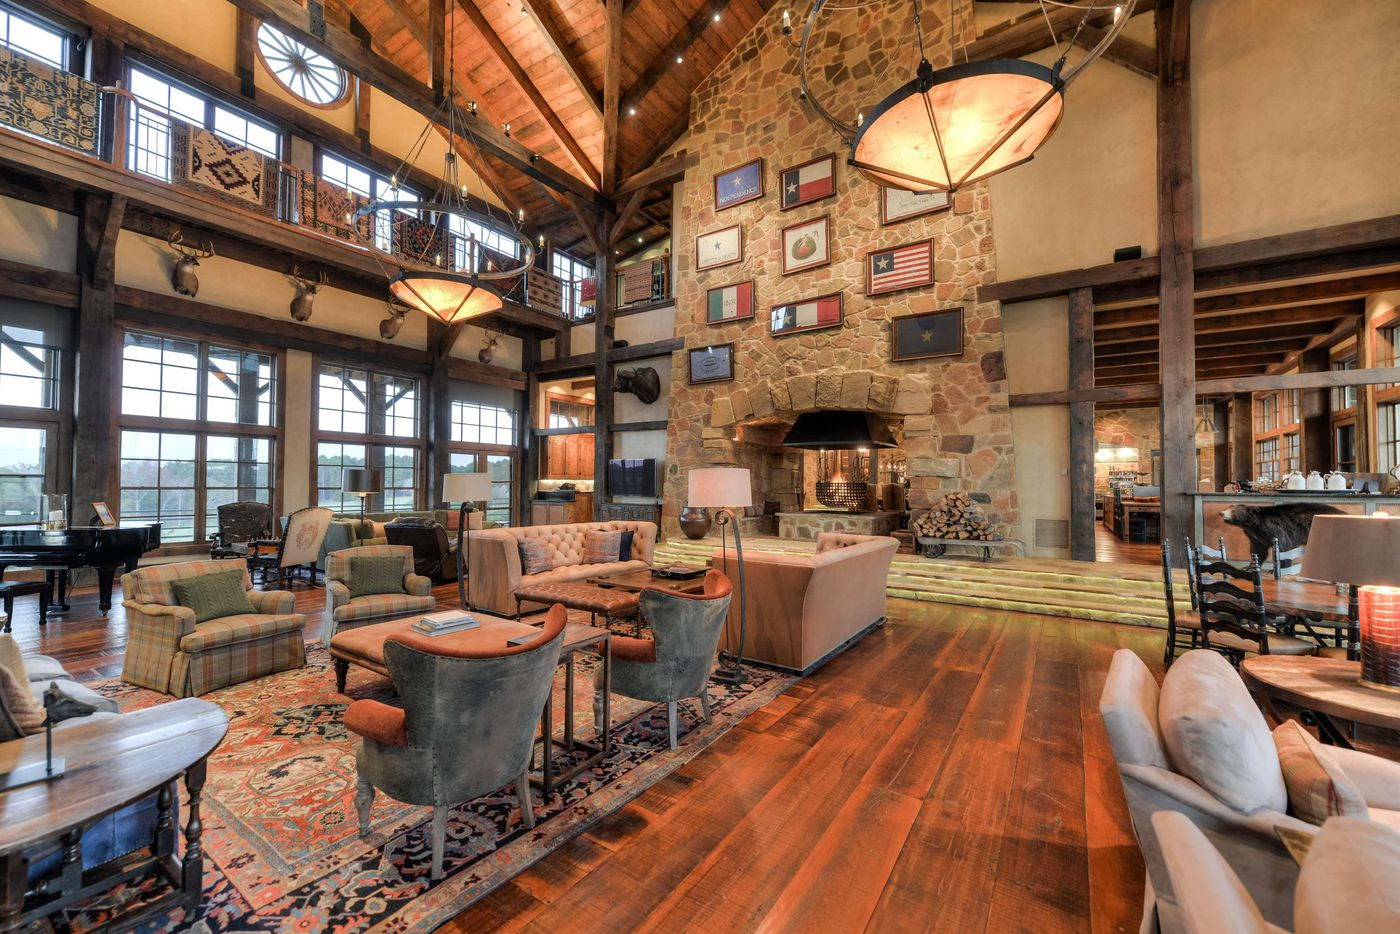 Barefoot Ranch has a 35,000-square-foot, timber-beamed lodge, golf course, boat house, multiple cabins and cottages, tennis courts, a driving range and equestrian center.